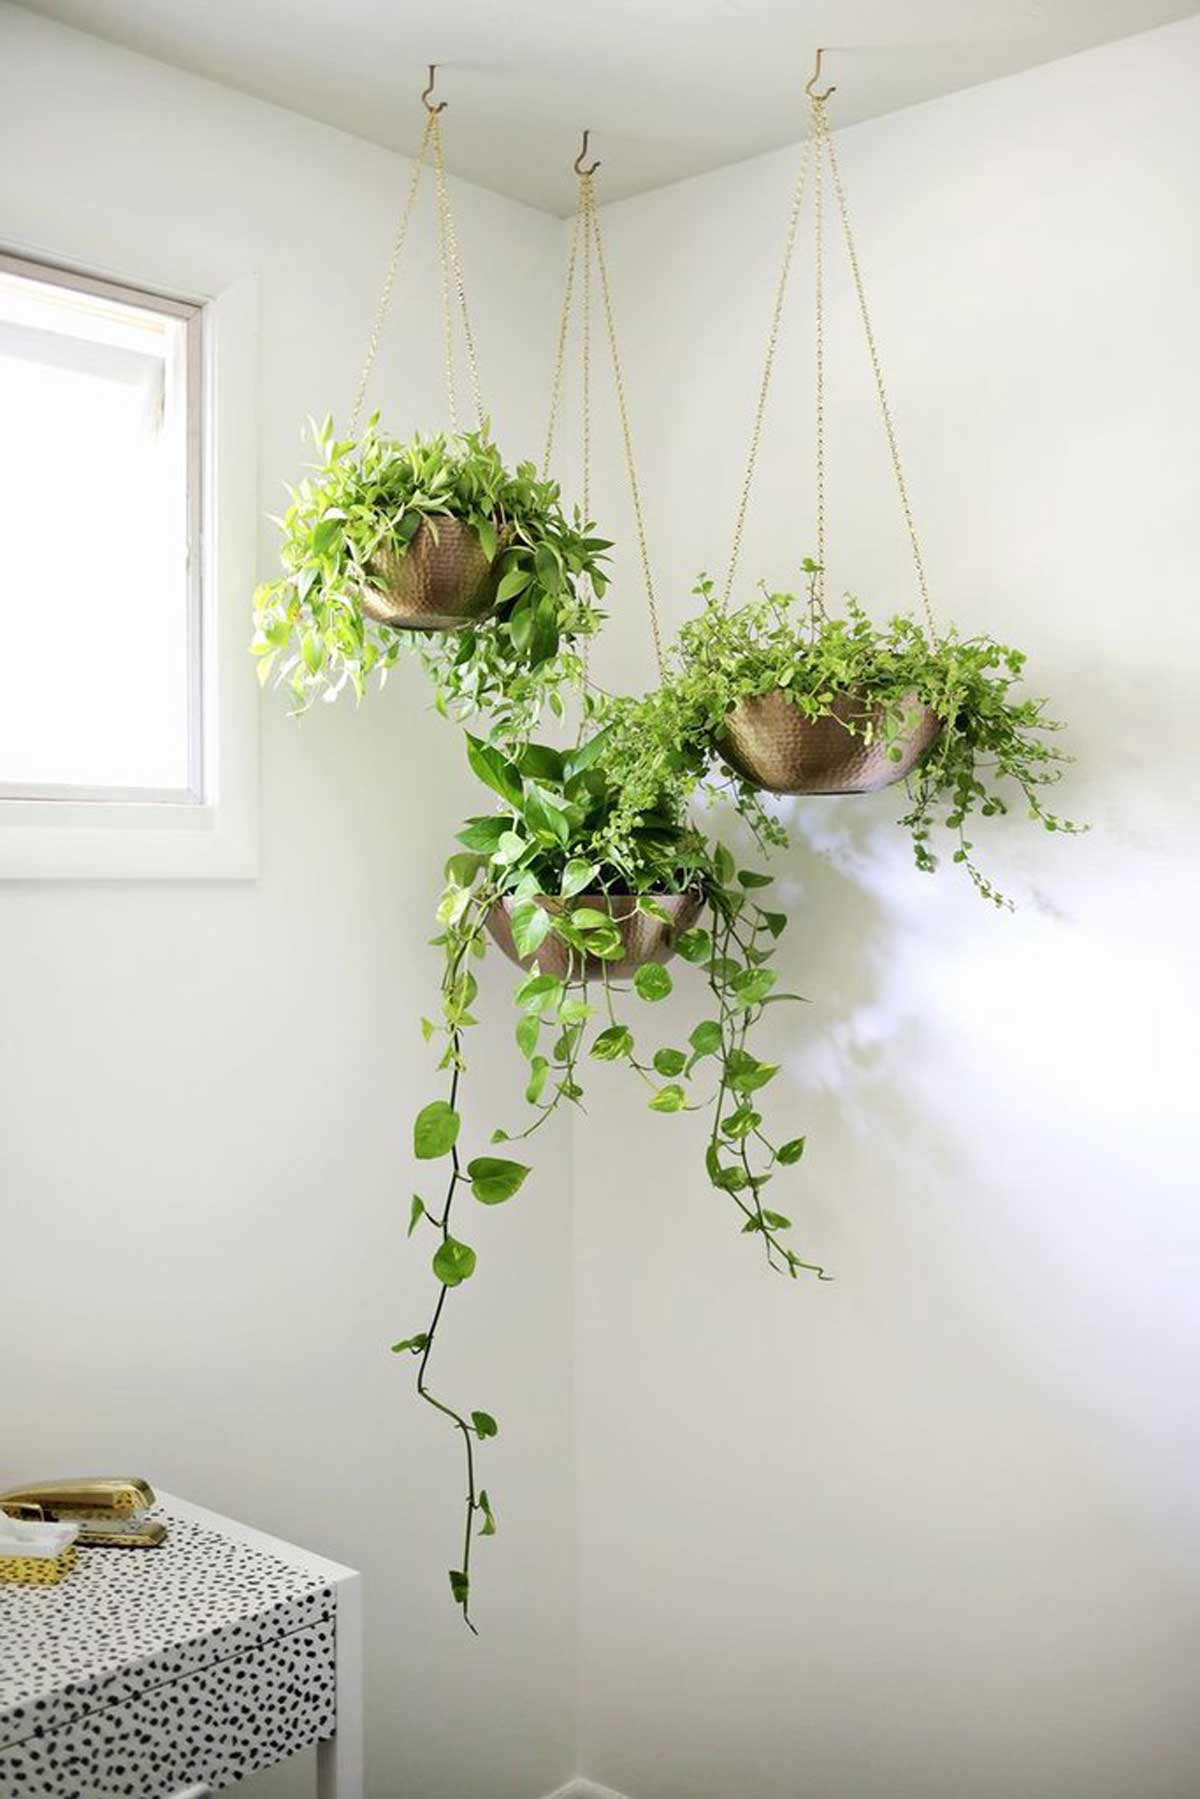 Ikea Hanging Planter